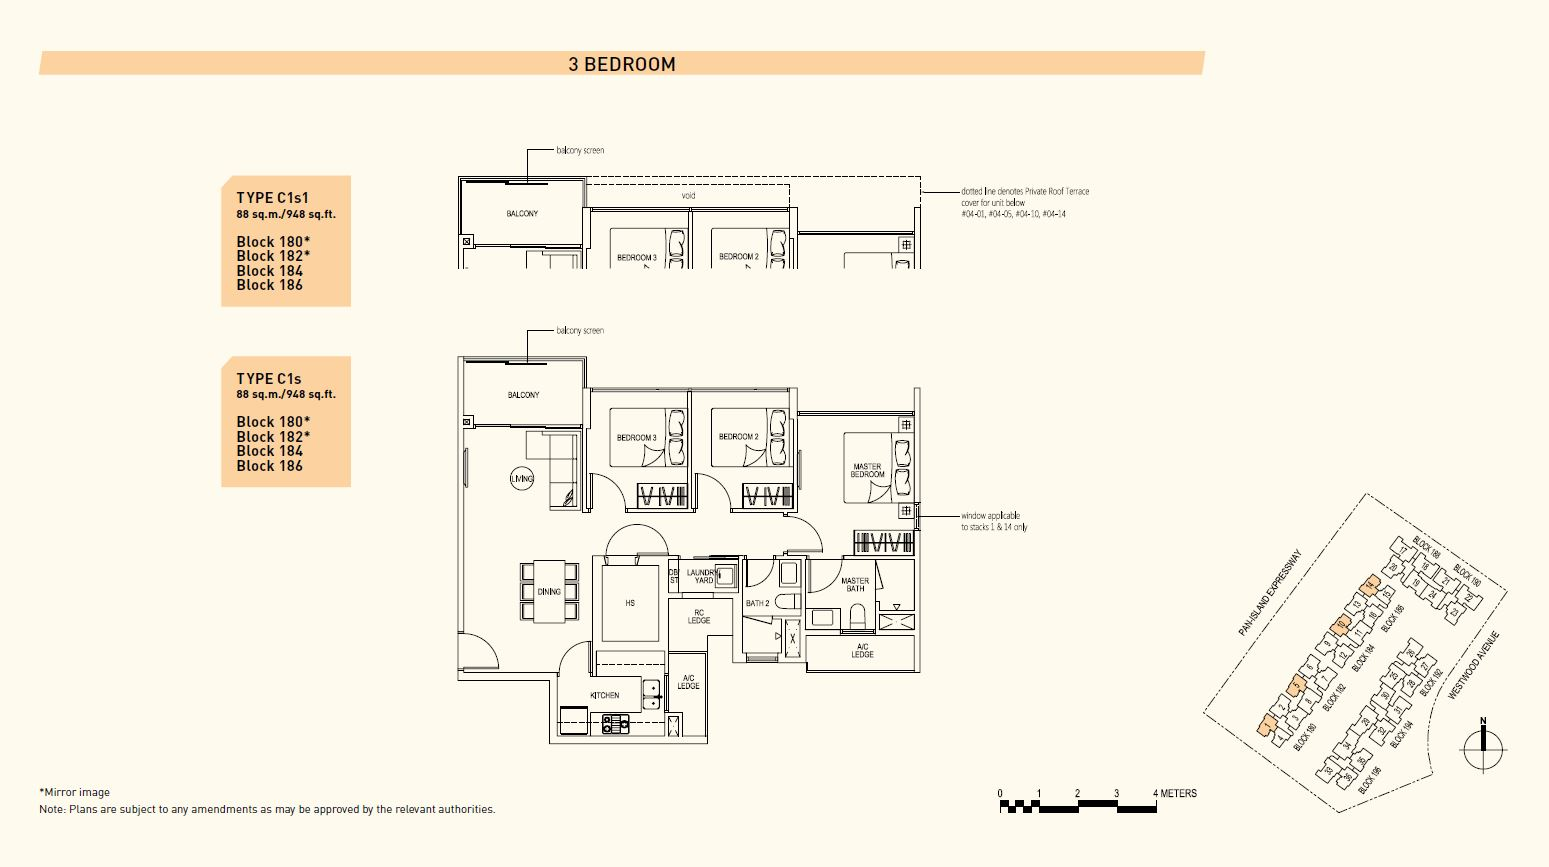 3BR C1s C1s1_Westwood Residences_Terence Low_96411910